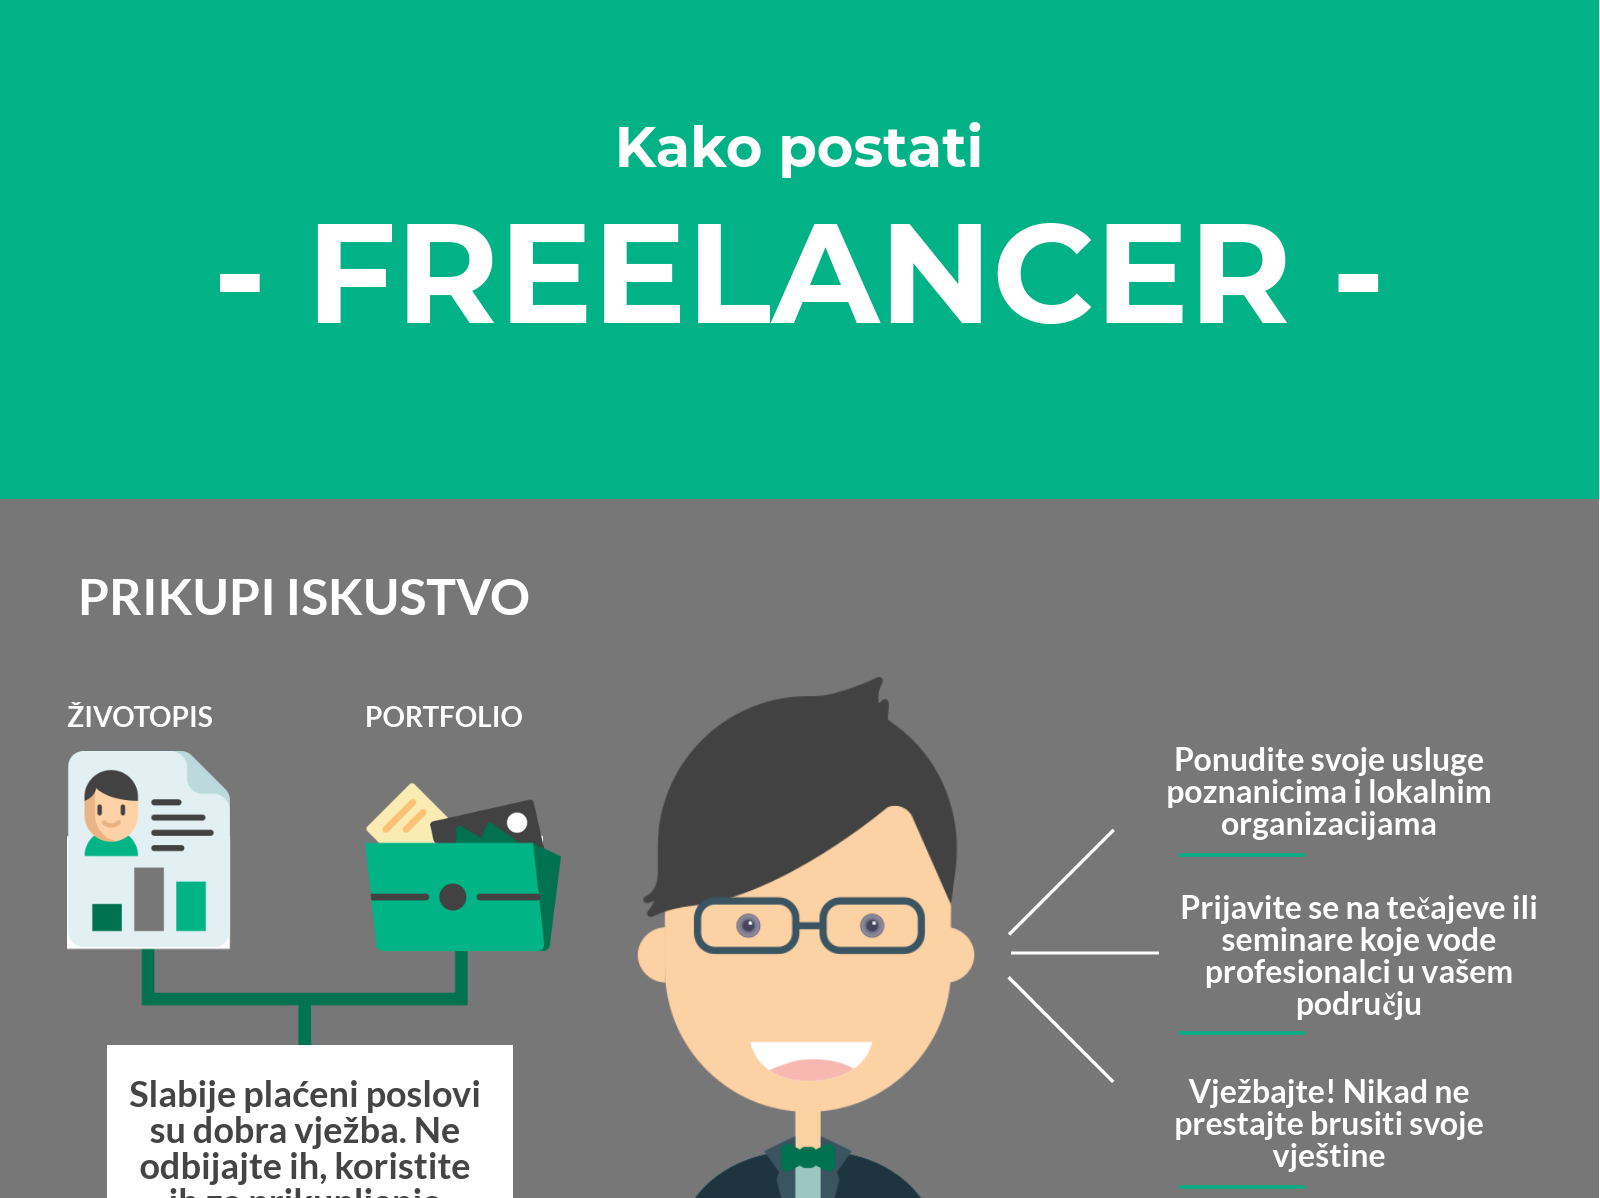 Kako postati freelancer